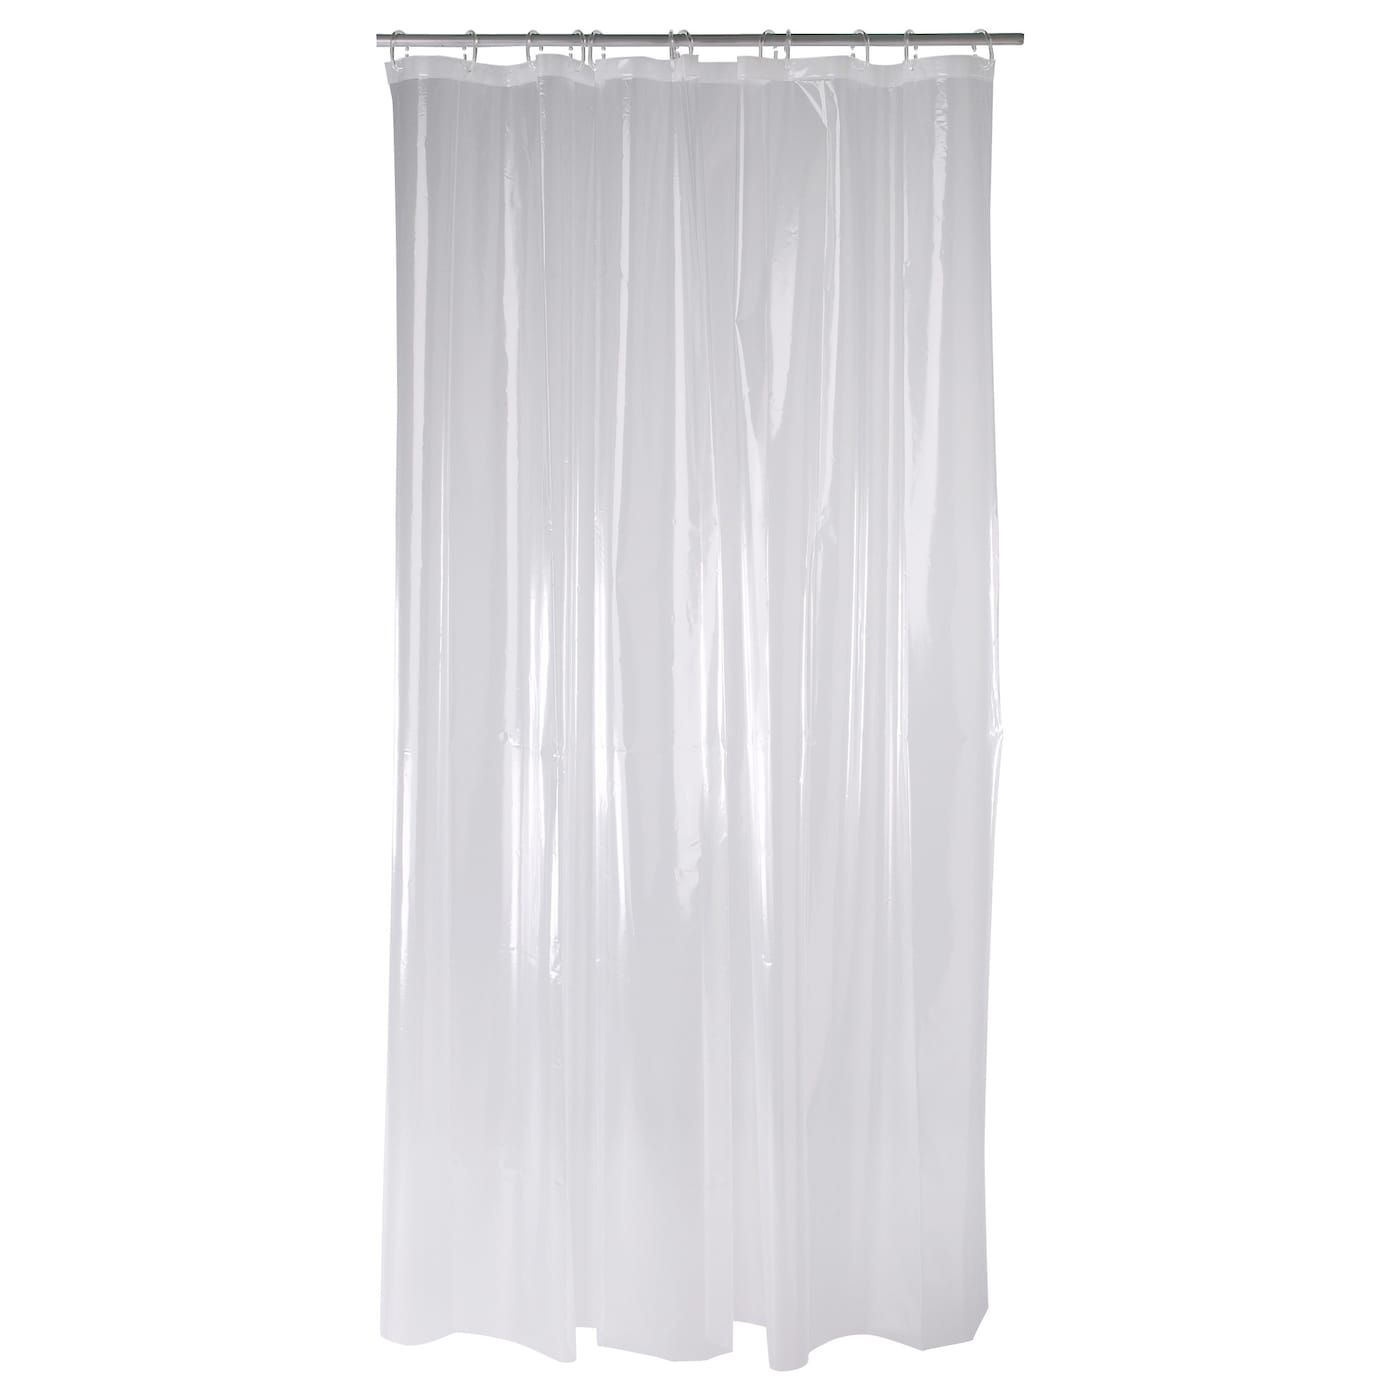 Nackten Shower Curtain Clear 71x71 Shower Curtain Plastic